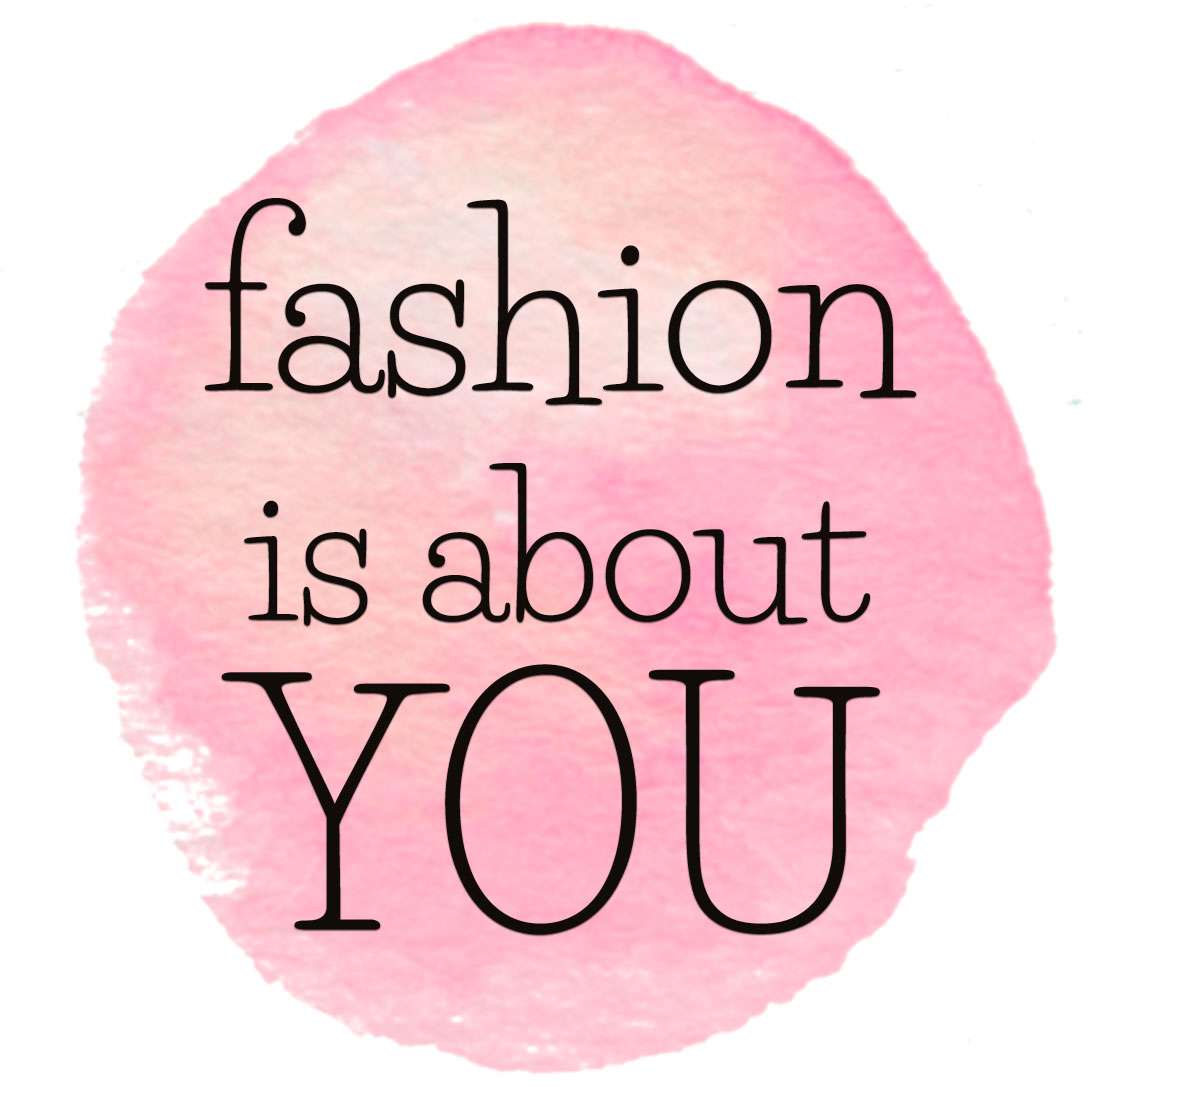 fashion is about you